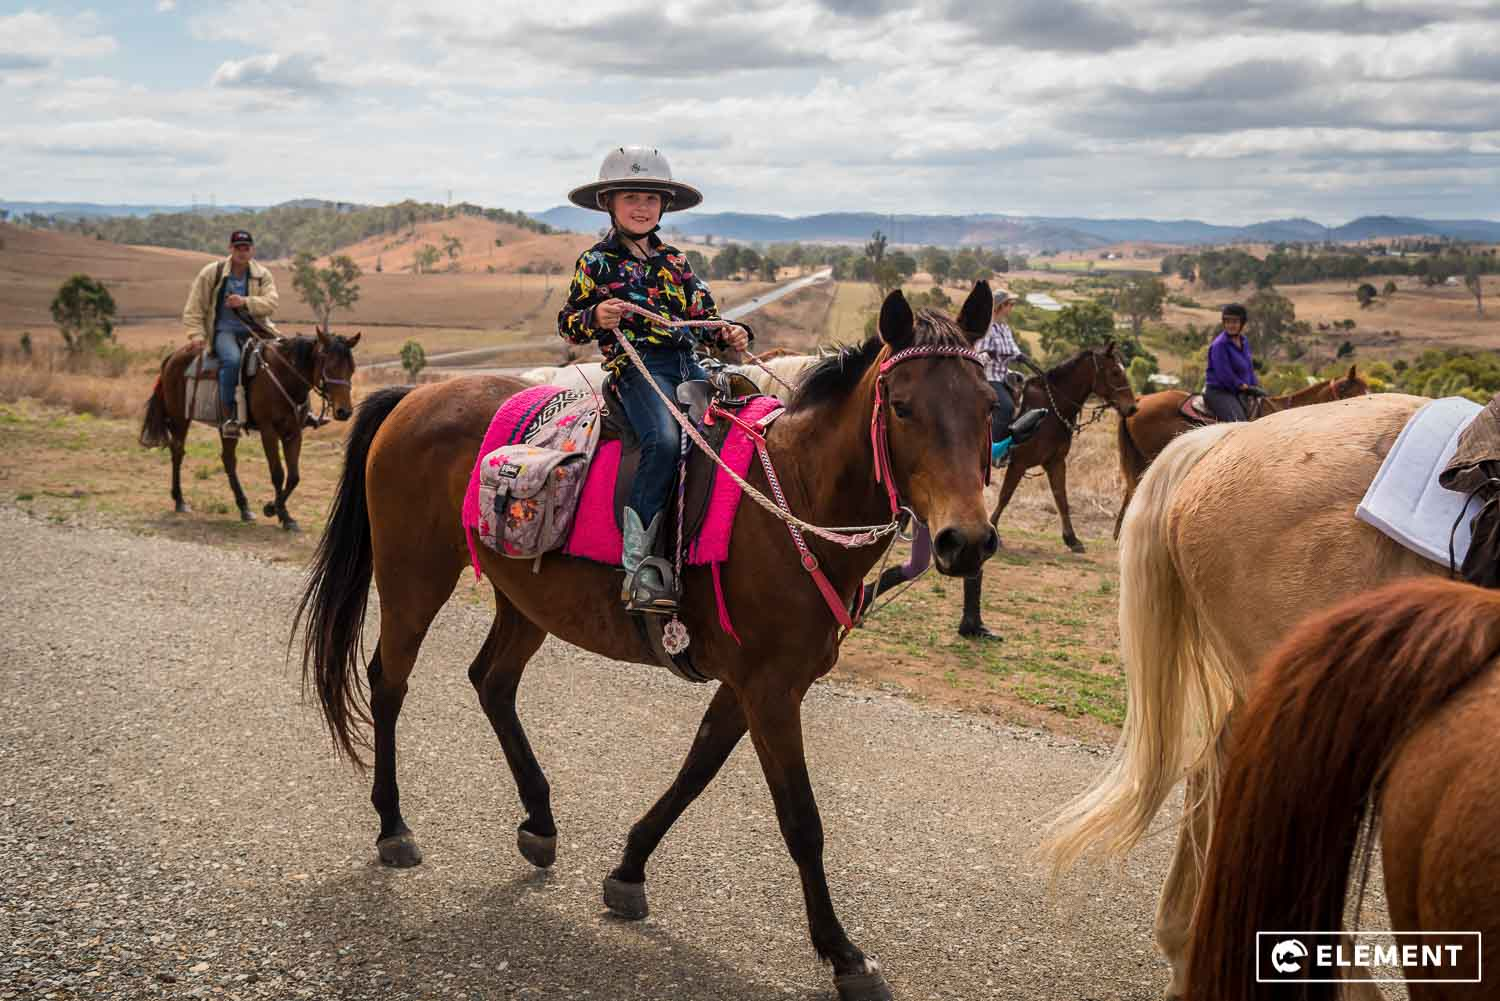 A young girl smiles as she rides her horse.